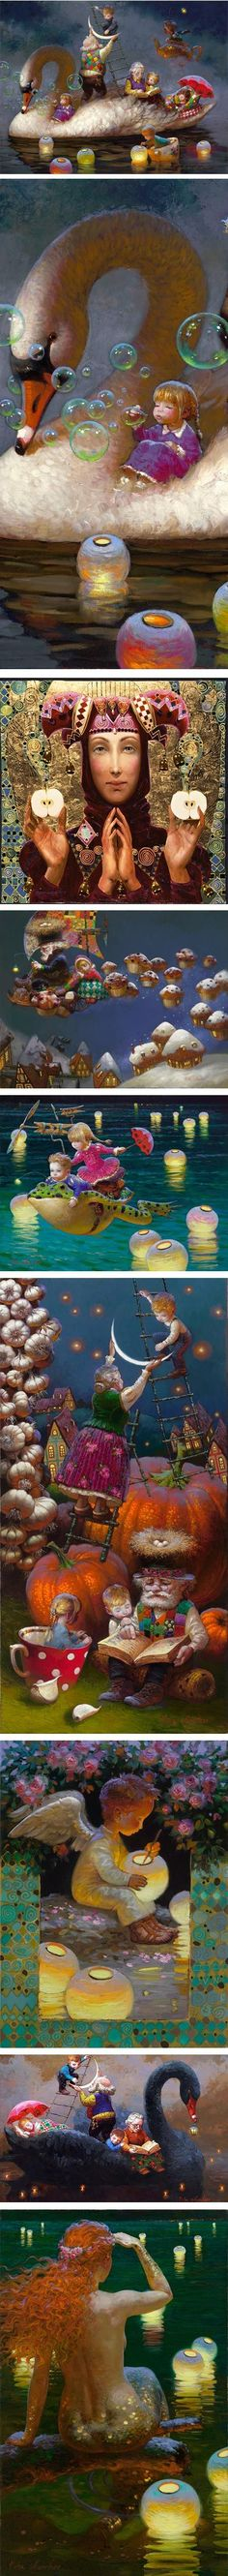 Victor Nizovtsev Victor Nizovtsev was born in Russia and studied at the Ilia Repin Collge for Art in Chisinau, Moldavia and the Vera Muhina University for Industrial Arts in St. Petersburg. He now lives in the U.S. in Maryland. His paintings have some of the narrative character of Golden Age children's book illustration, and draw on influences from Art Nouveau,: